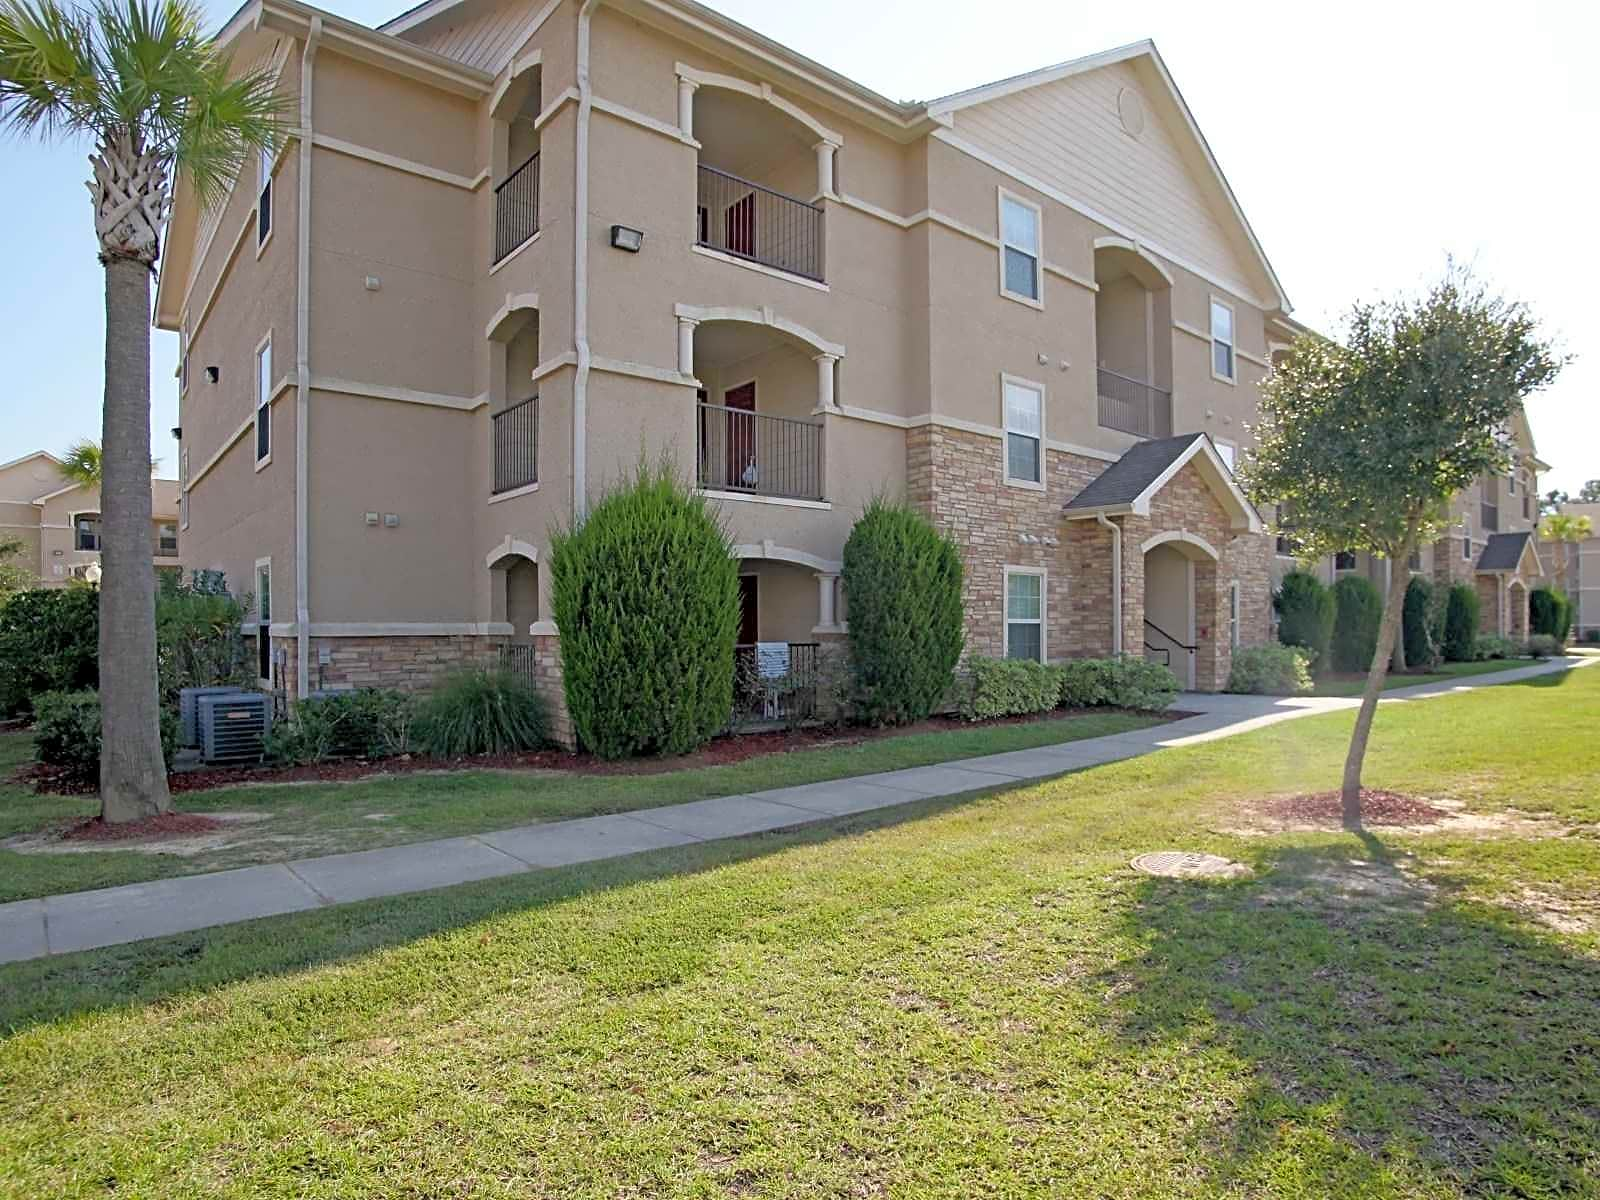 20 Best Apartments For Rent In Biloxi, MS (with pictures)!